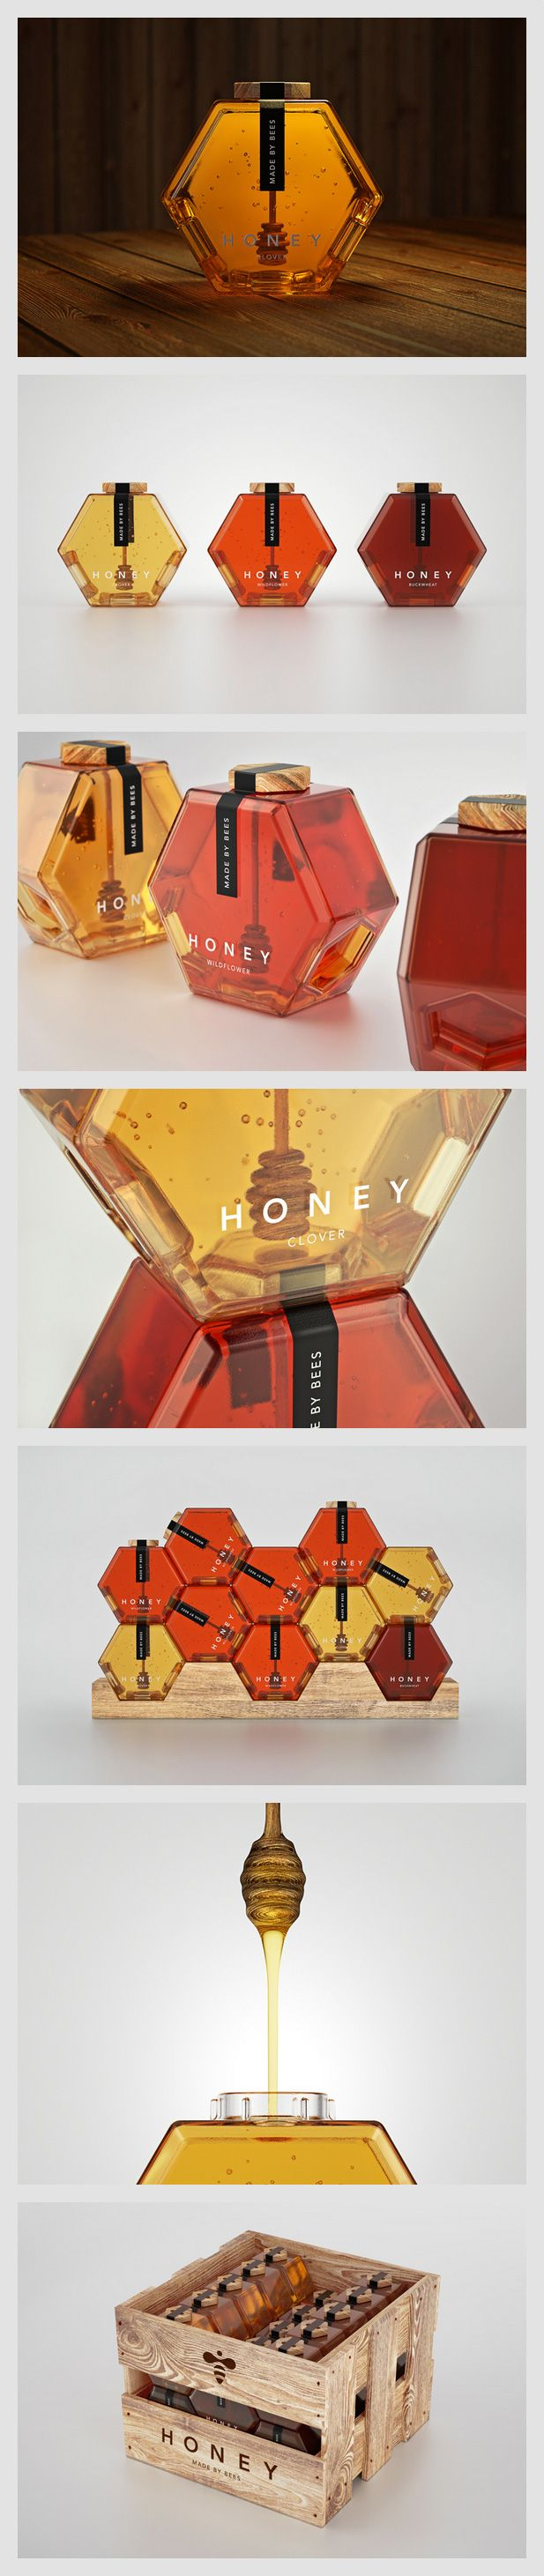 Honey Packaging Concept by Maksim Arbuzov. #Honey #Packaging #Advertising #Design #creative #desigm #inspiration #paint #package #design #graphicdesign #designer #branding #logo #picoftheday #like #follow #repost #art #installation #modern #berlin #newyork #picture #image #poster #advertising #ads